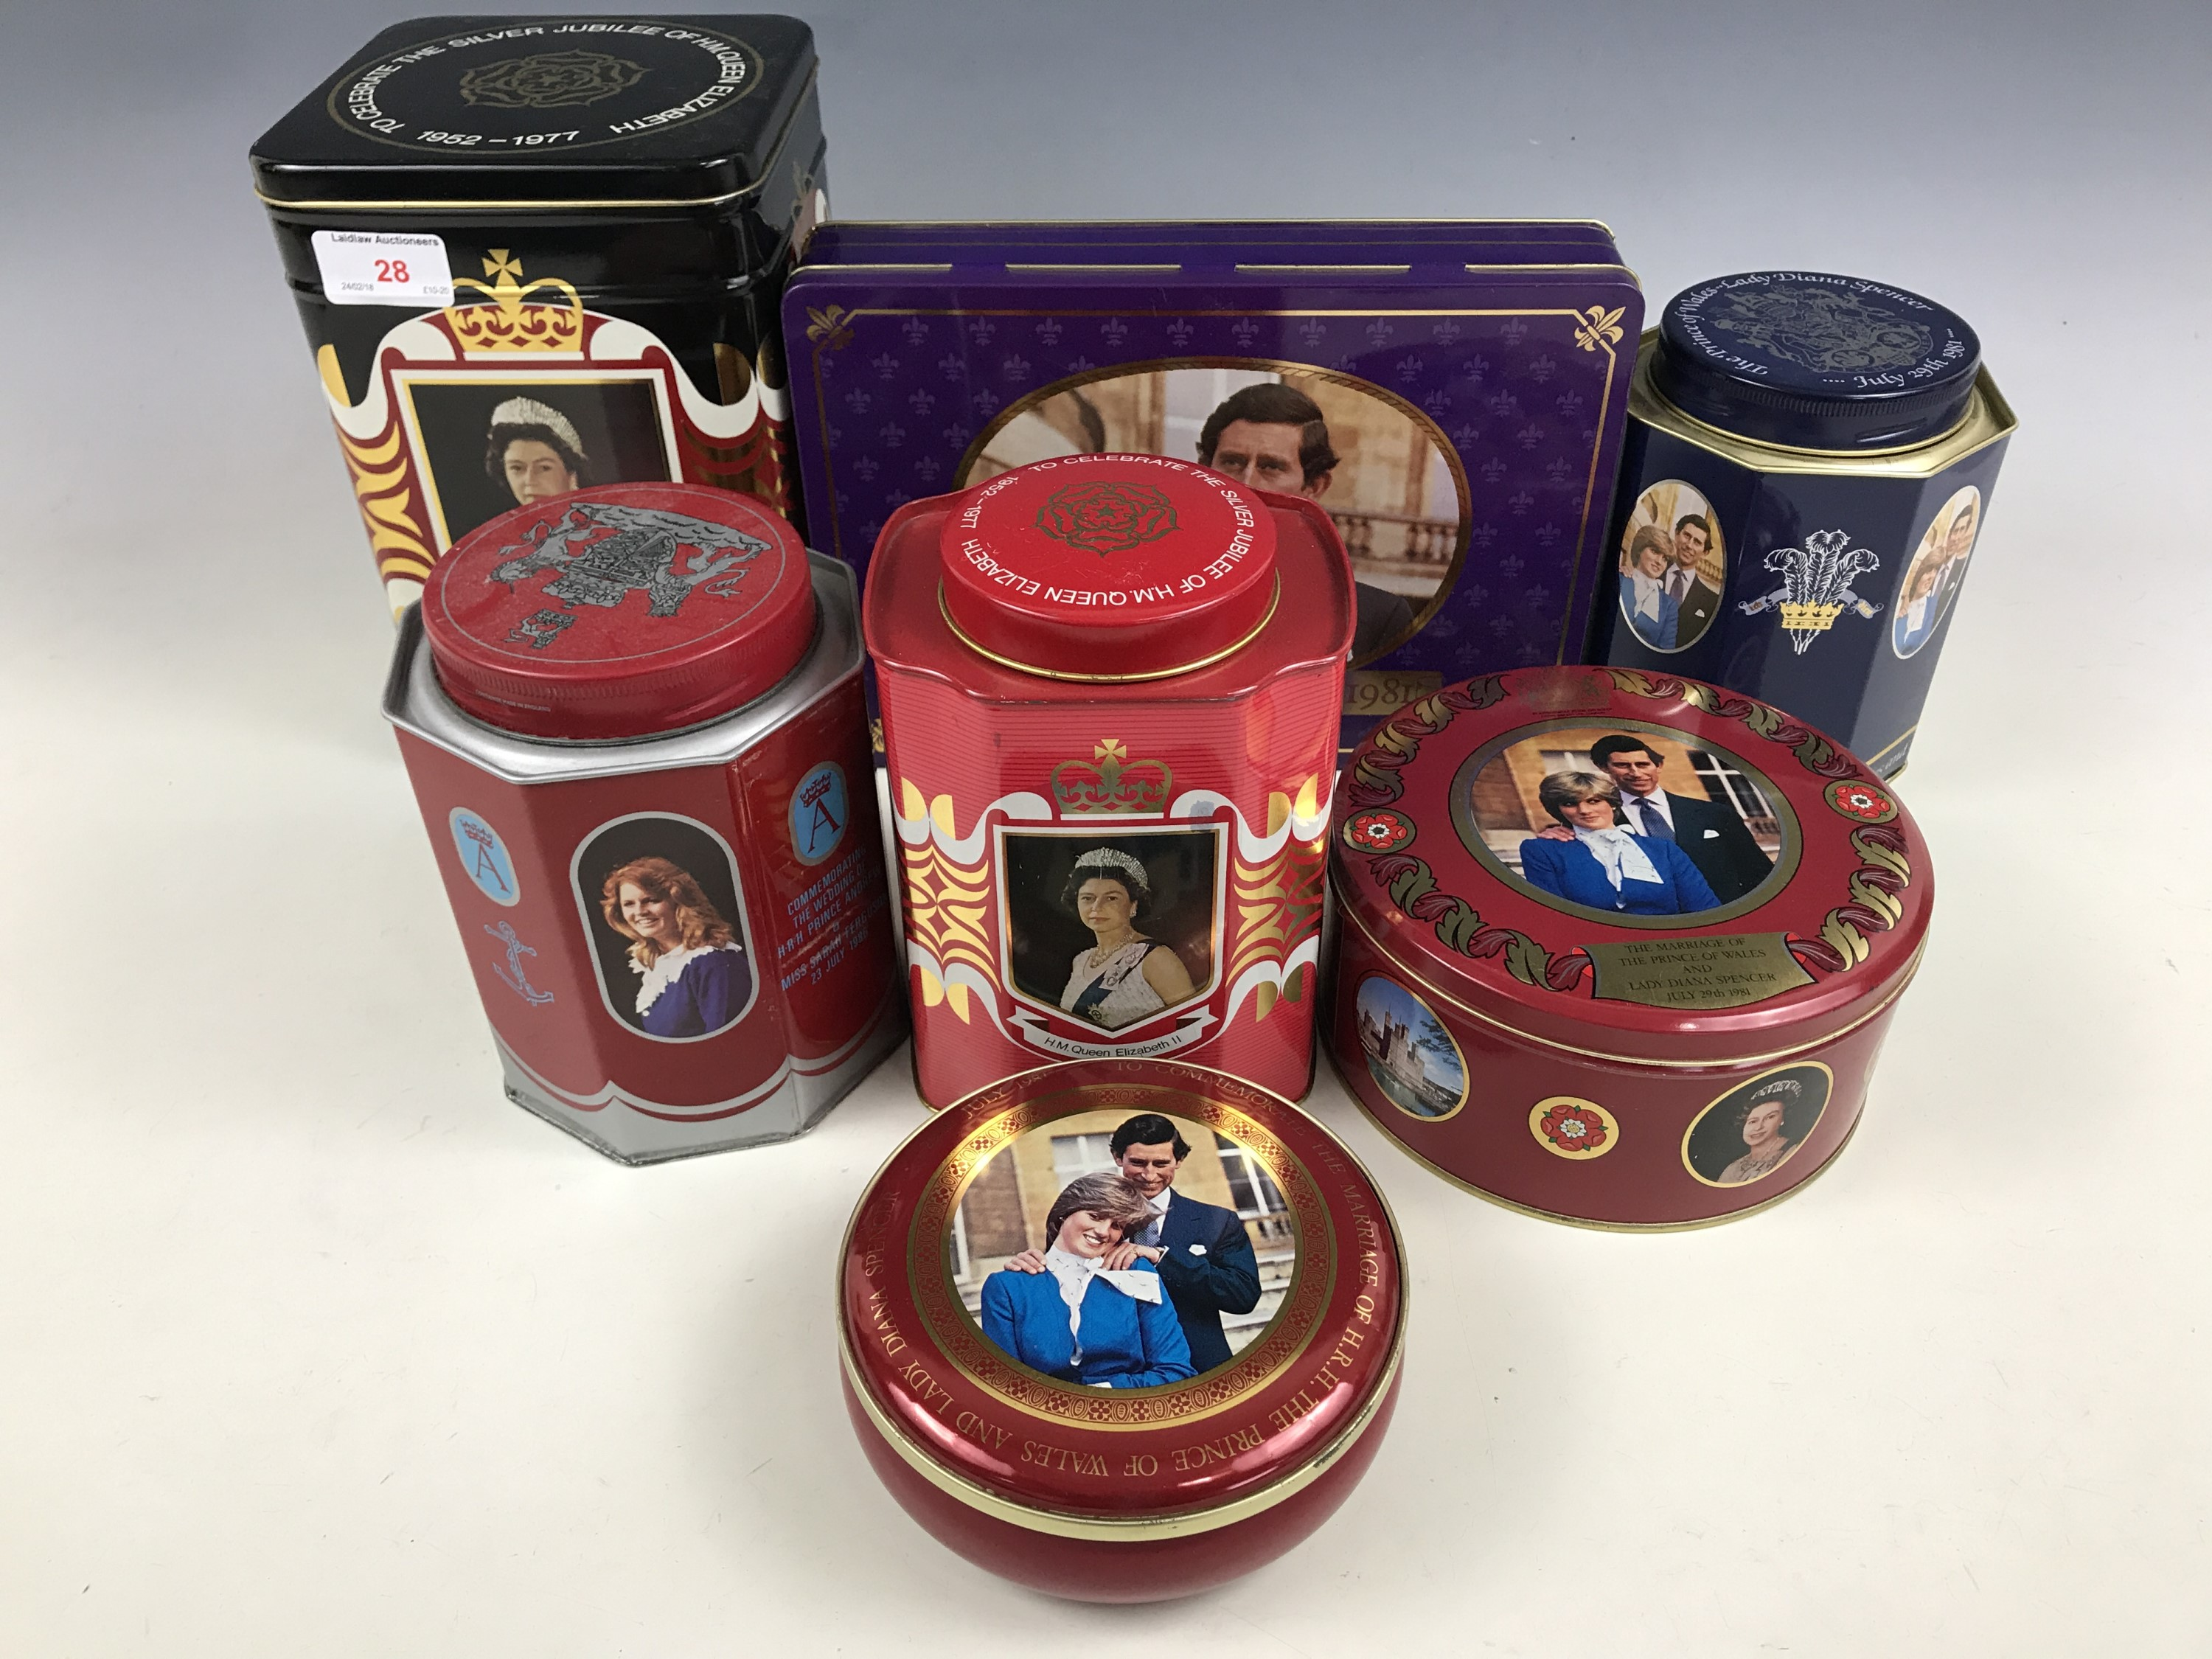 Lot 28 - A quantity of Royal commemorative tins manufactured by Metal Box of Carlisle